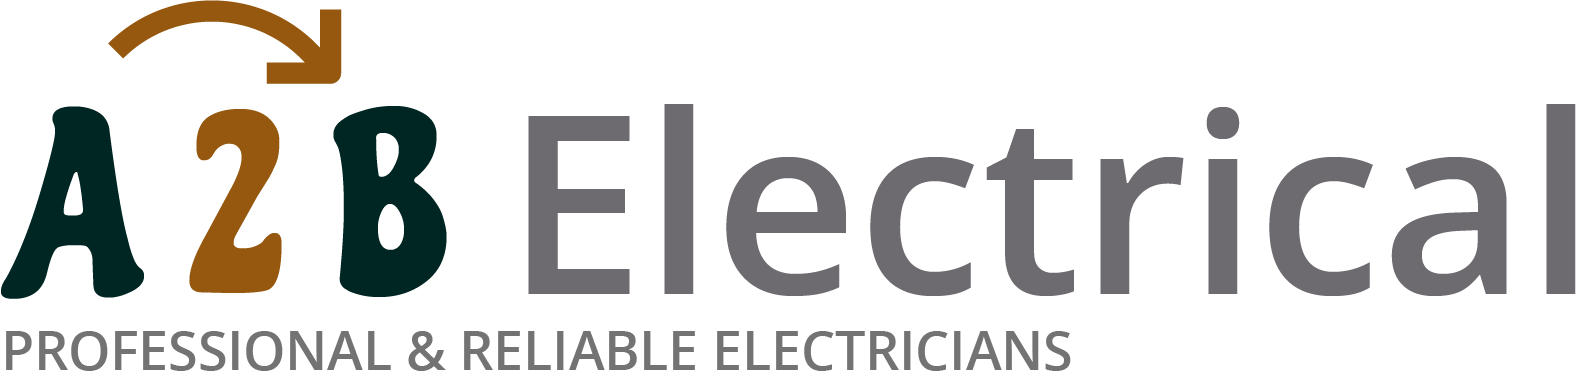 If you have electrical wiring problems in Wanstead, we can provide an electrician to have a look for you.